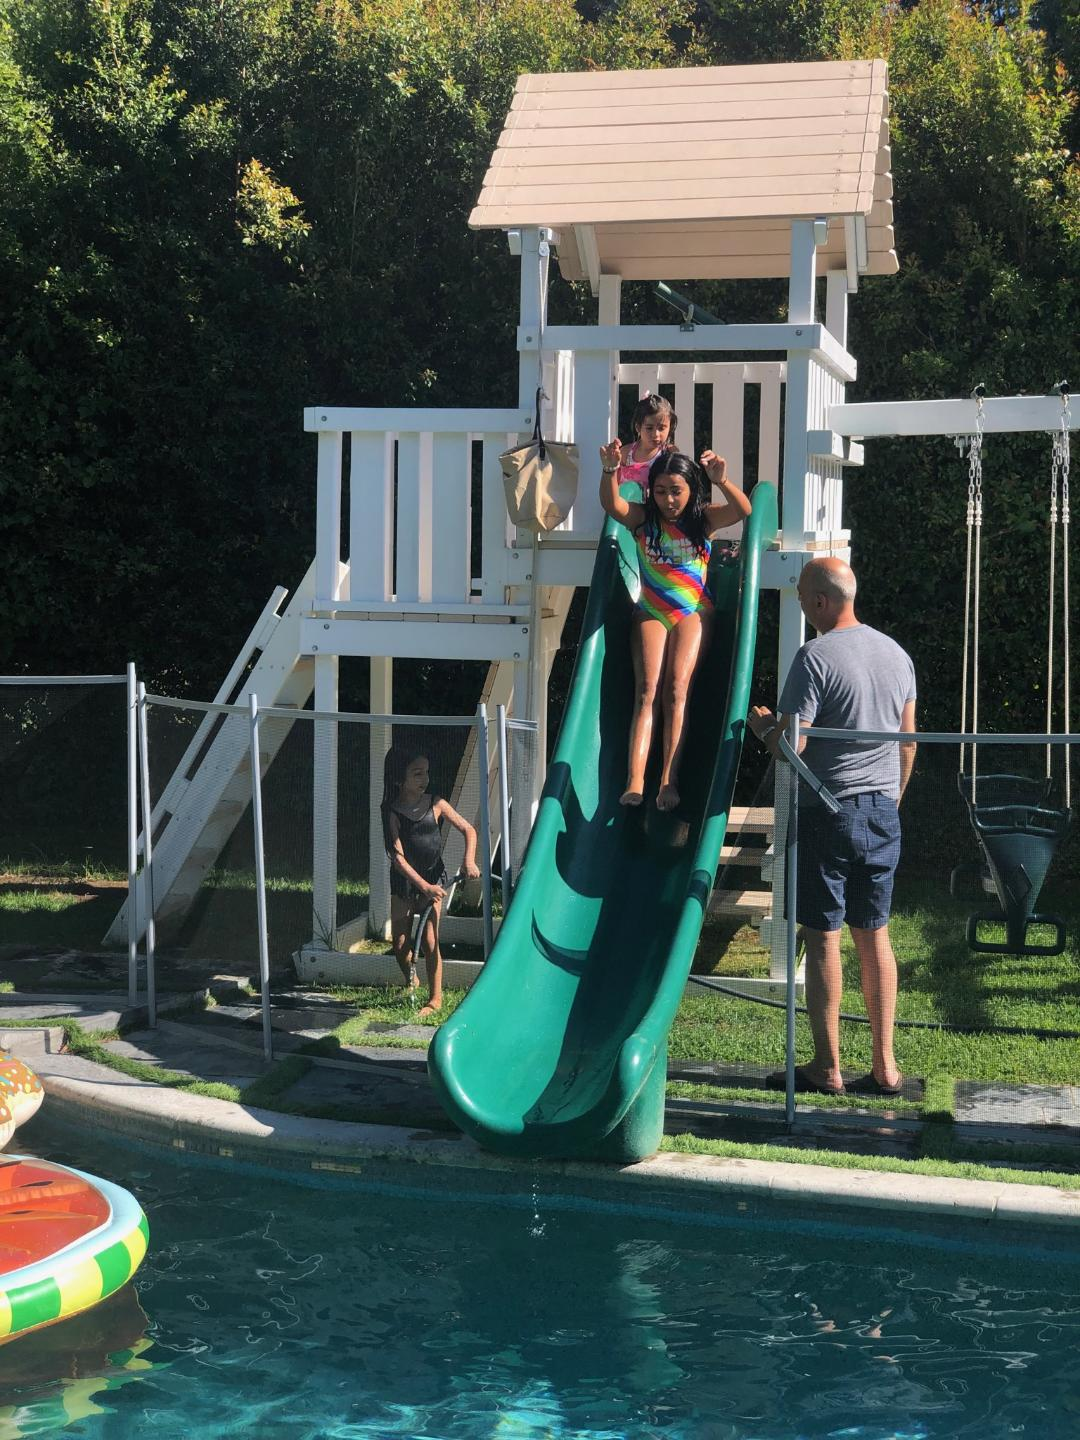 Tower with swimming pool slide